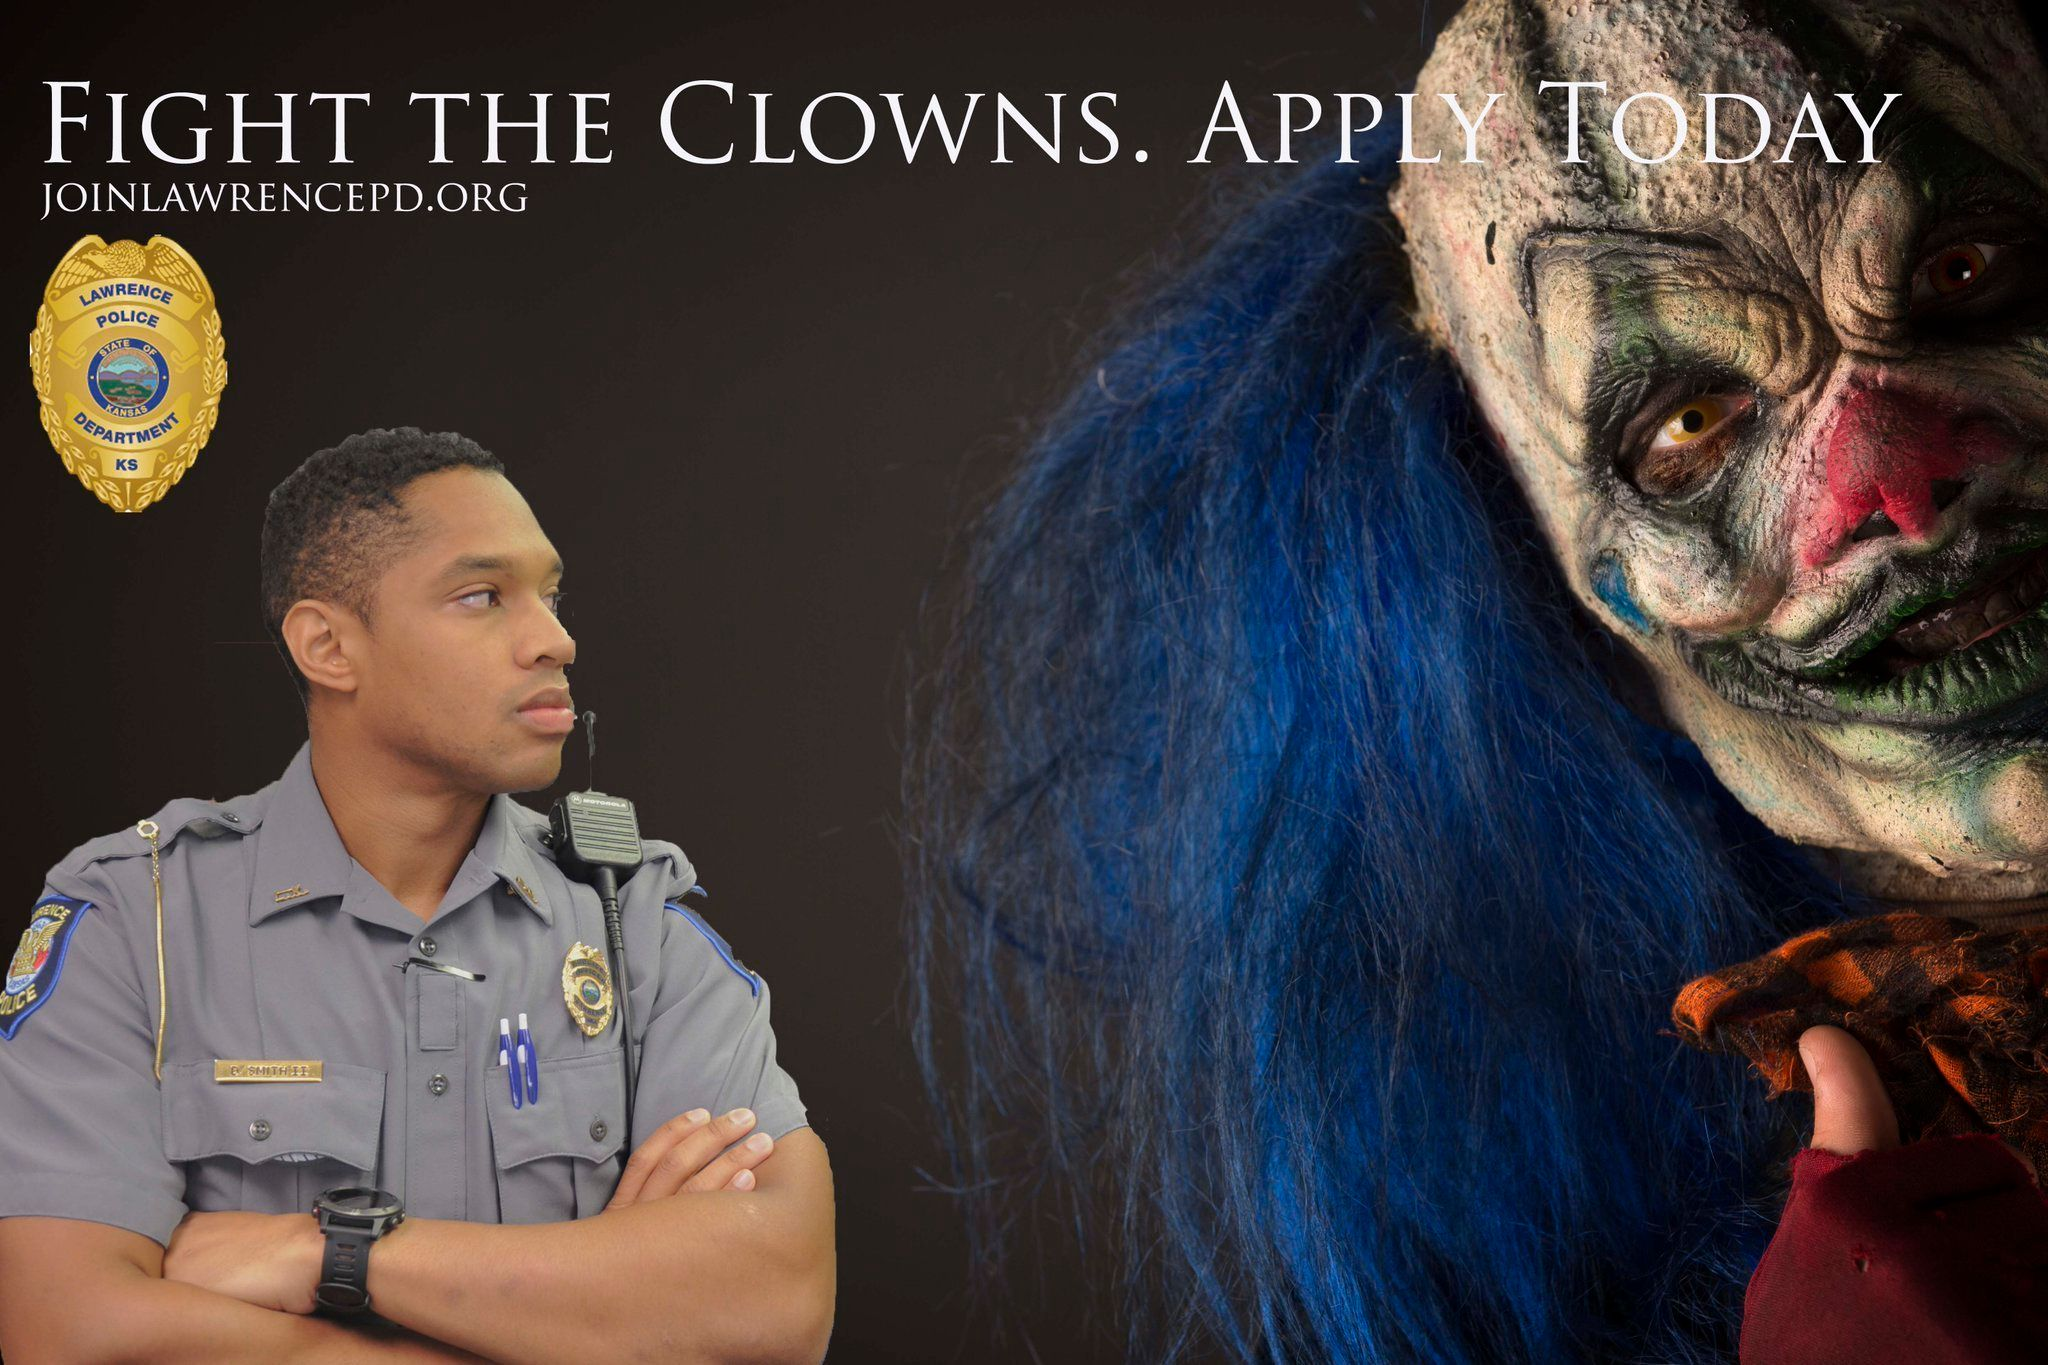 Cops Explain How To Pull Off A Good Halloween Prank Without Getting Arrested | HuffPost